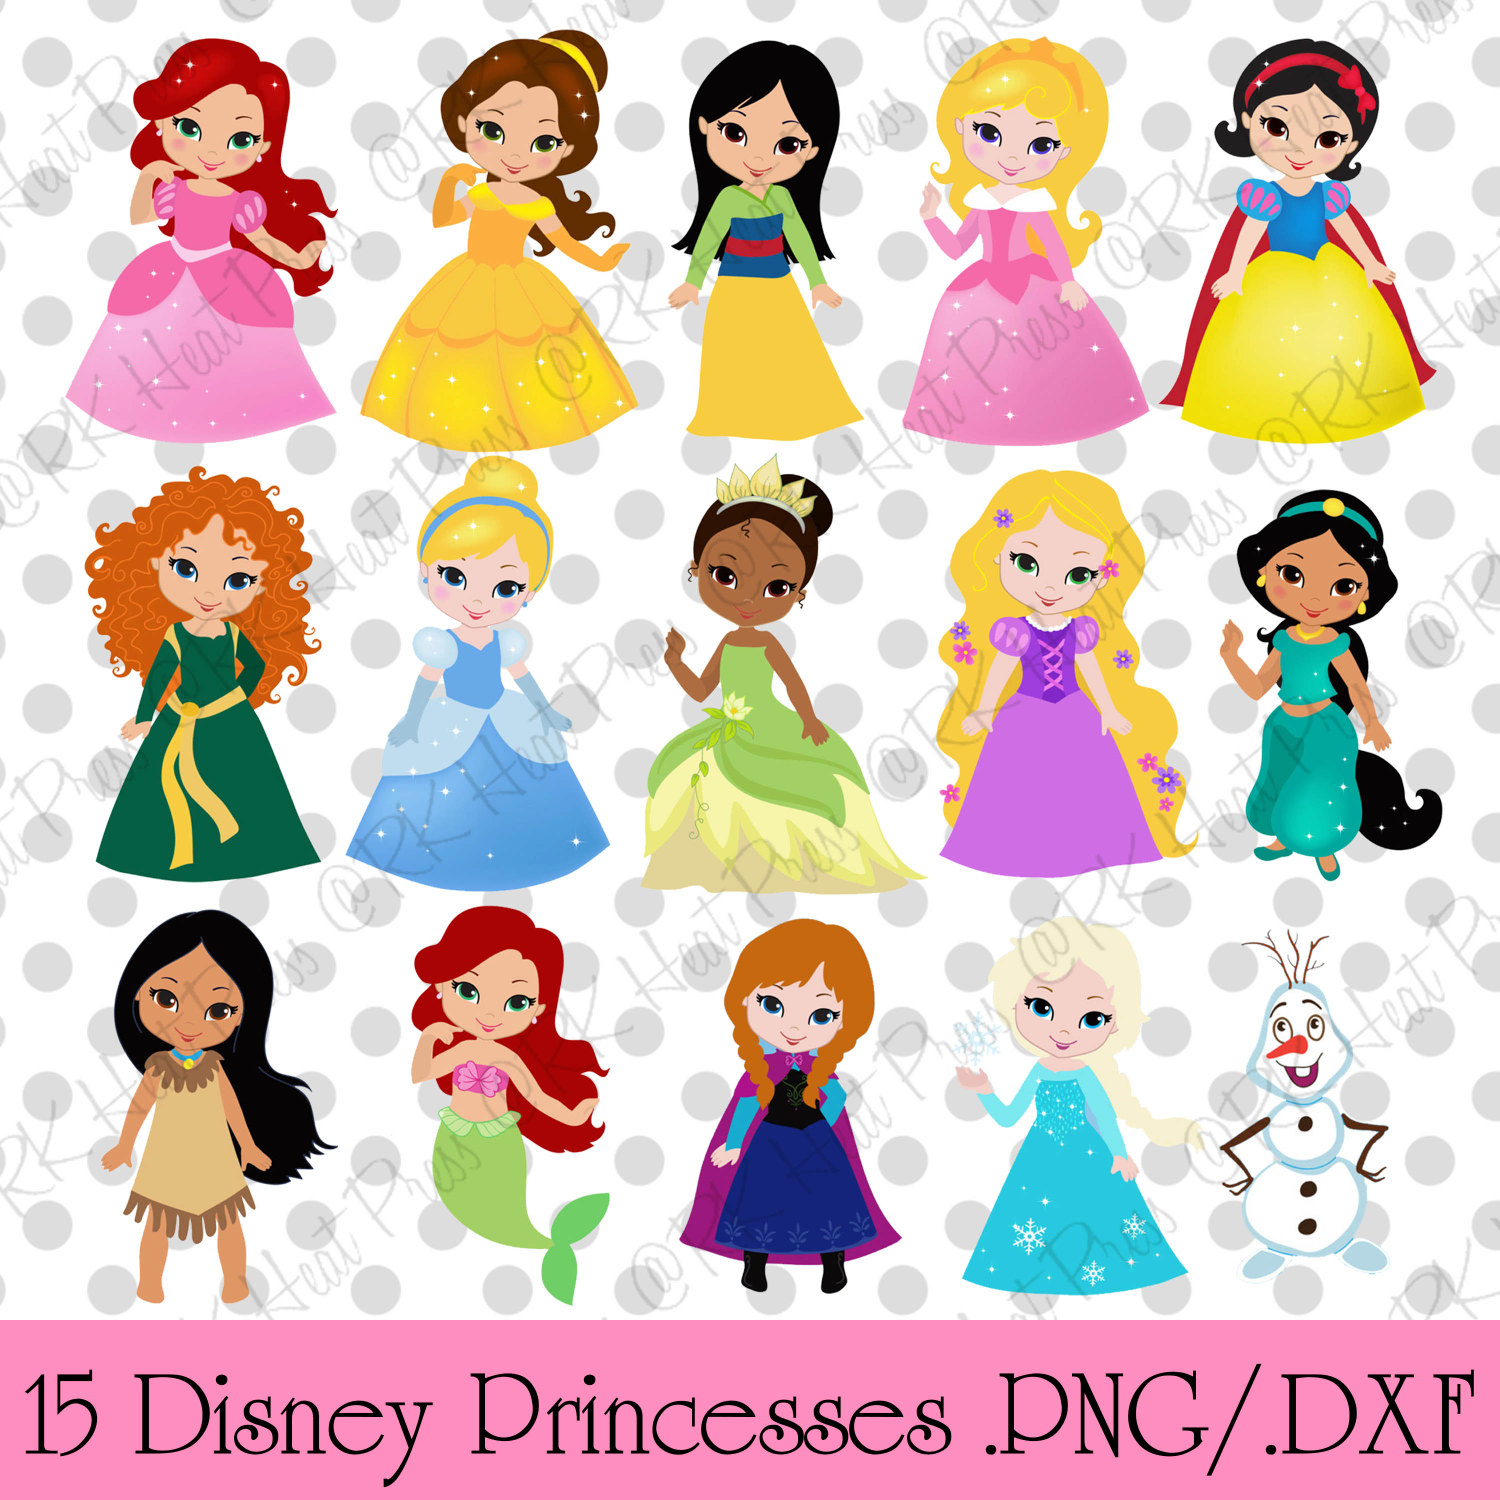 Beautiful clipart cute princess Disney caracterizada princesa Princess Fairytale